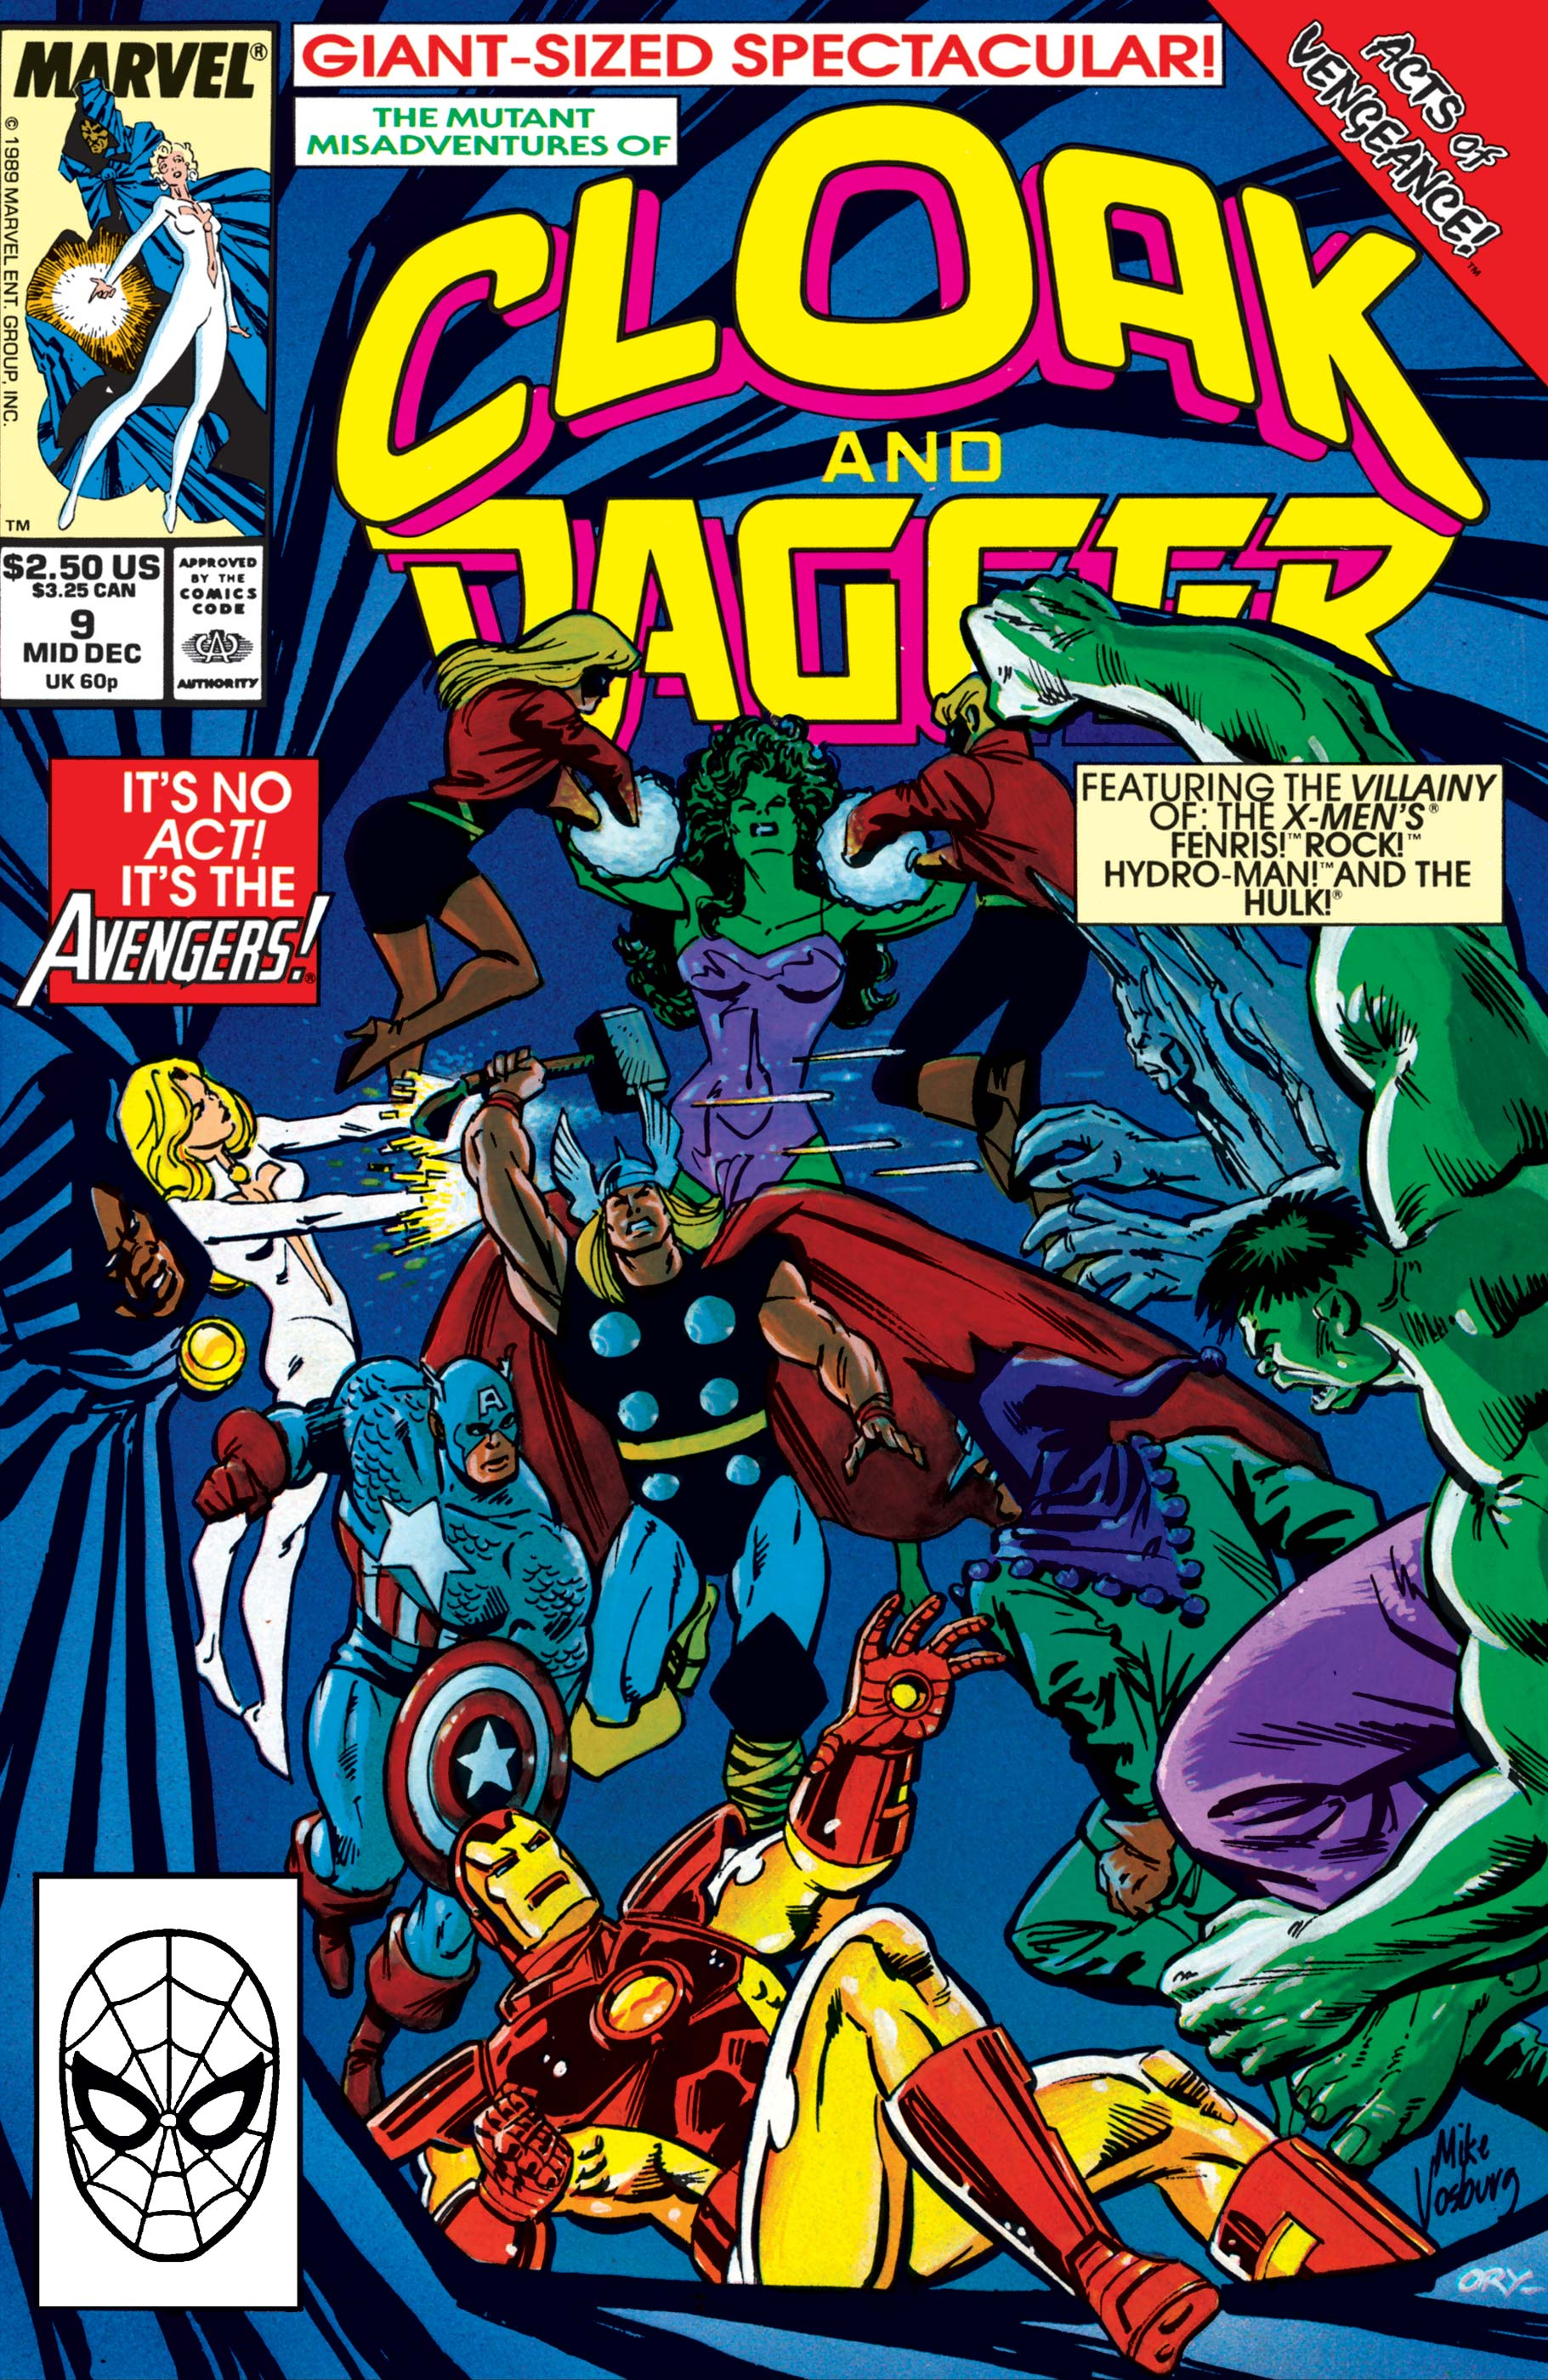 The Mutant Misadventures of Cloak and Dagger (1988) #9